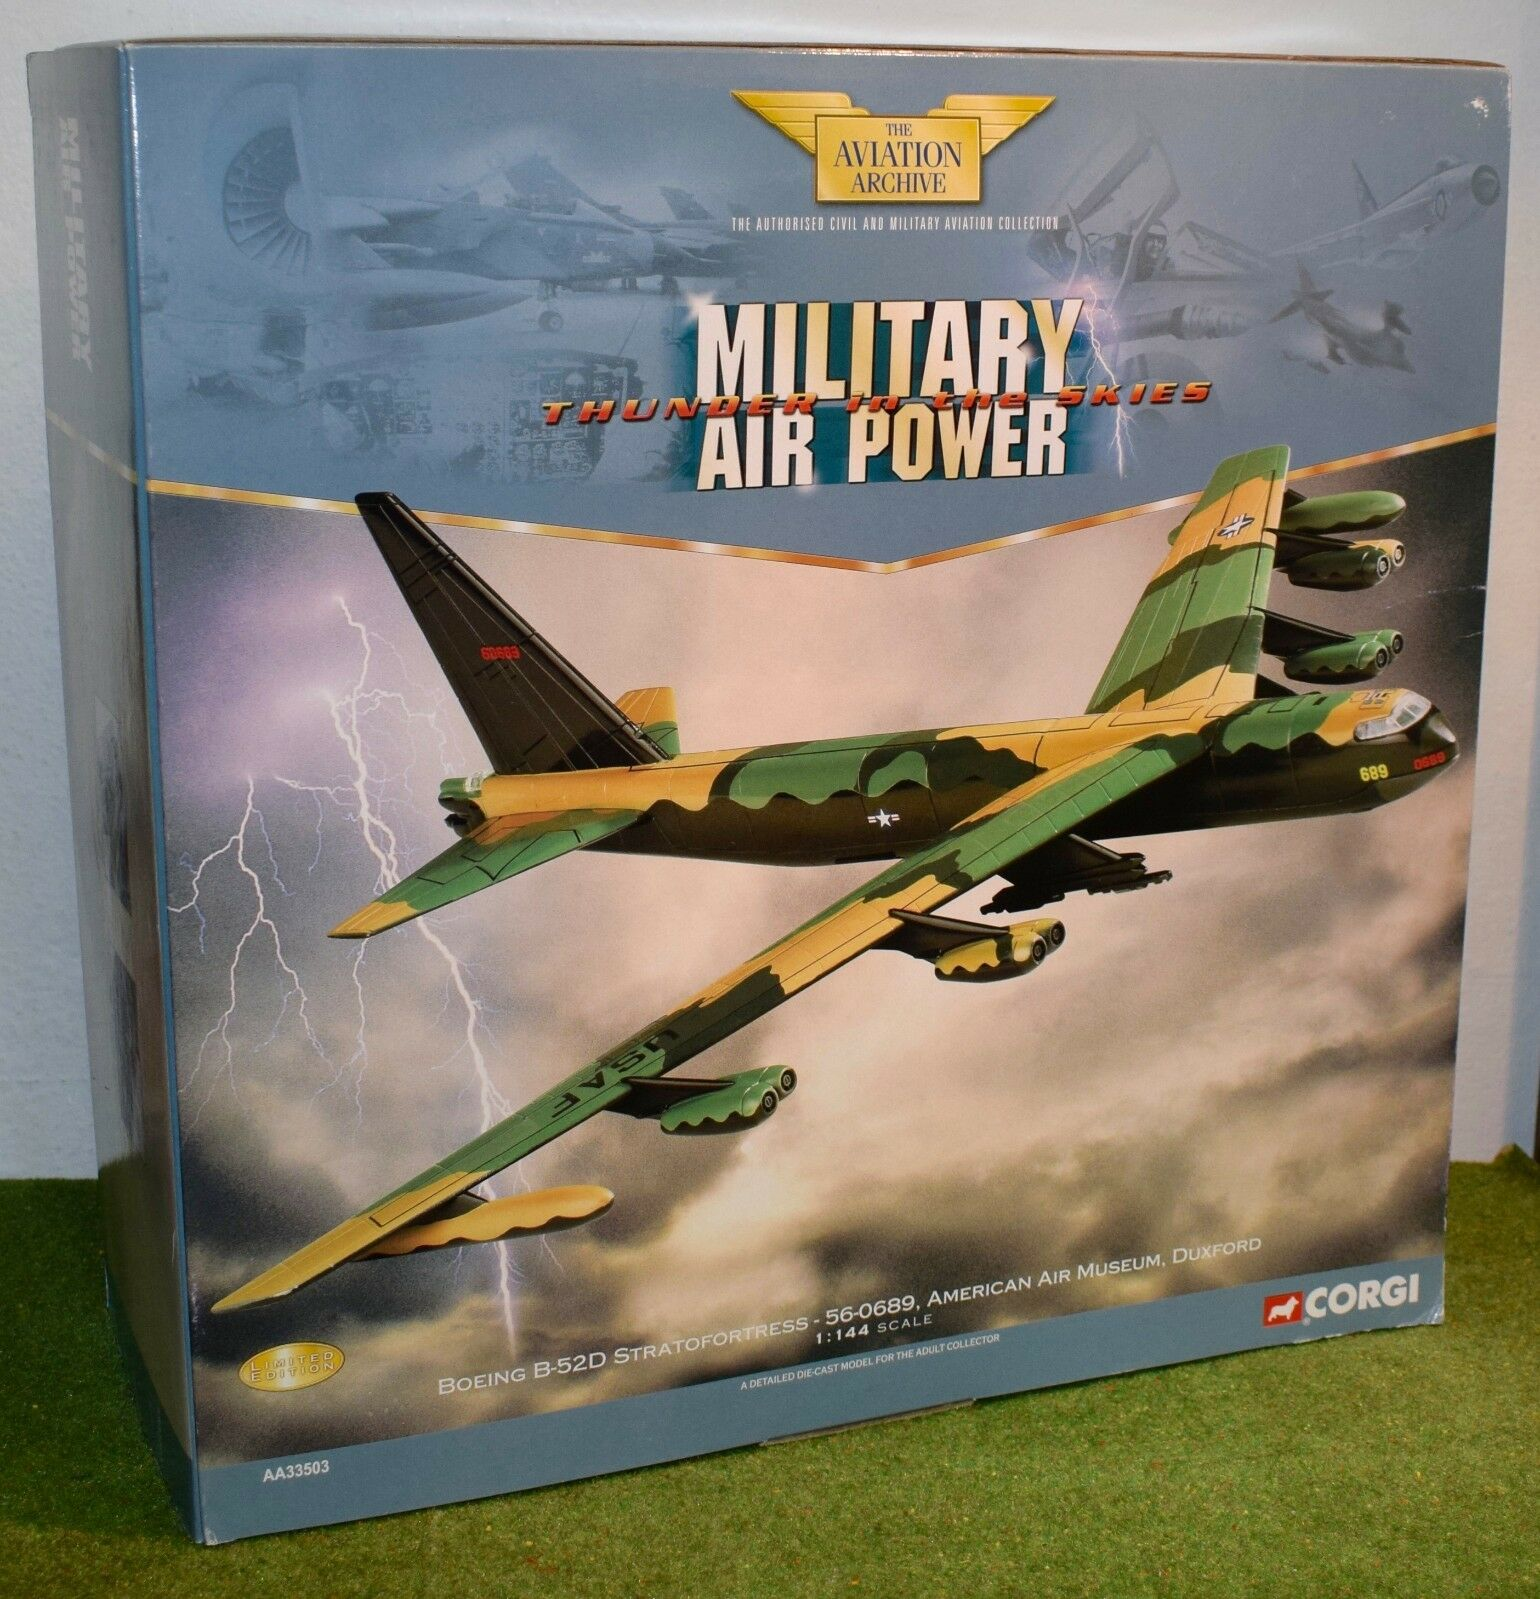 CORGI AVIATION 1 144 SCALE MILITARY AA33503 BOEING B-52D STRATOFORTRESS 56-0689